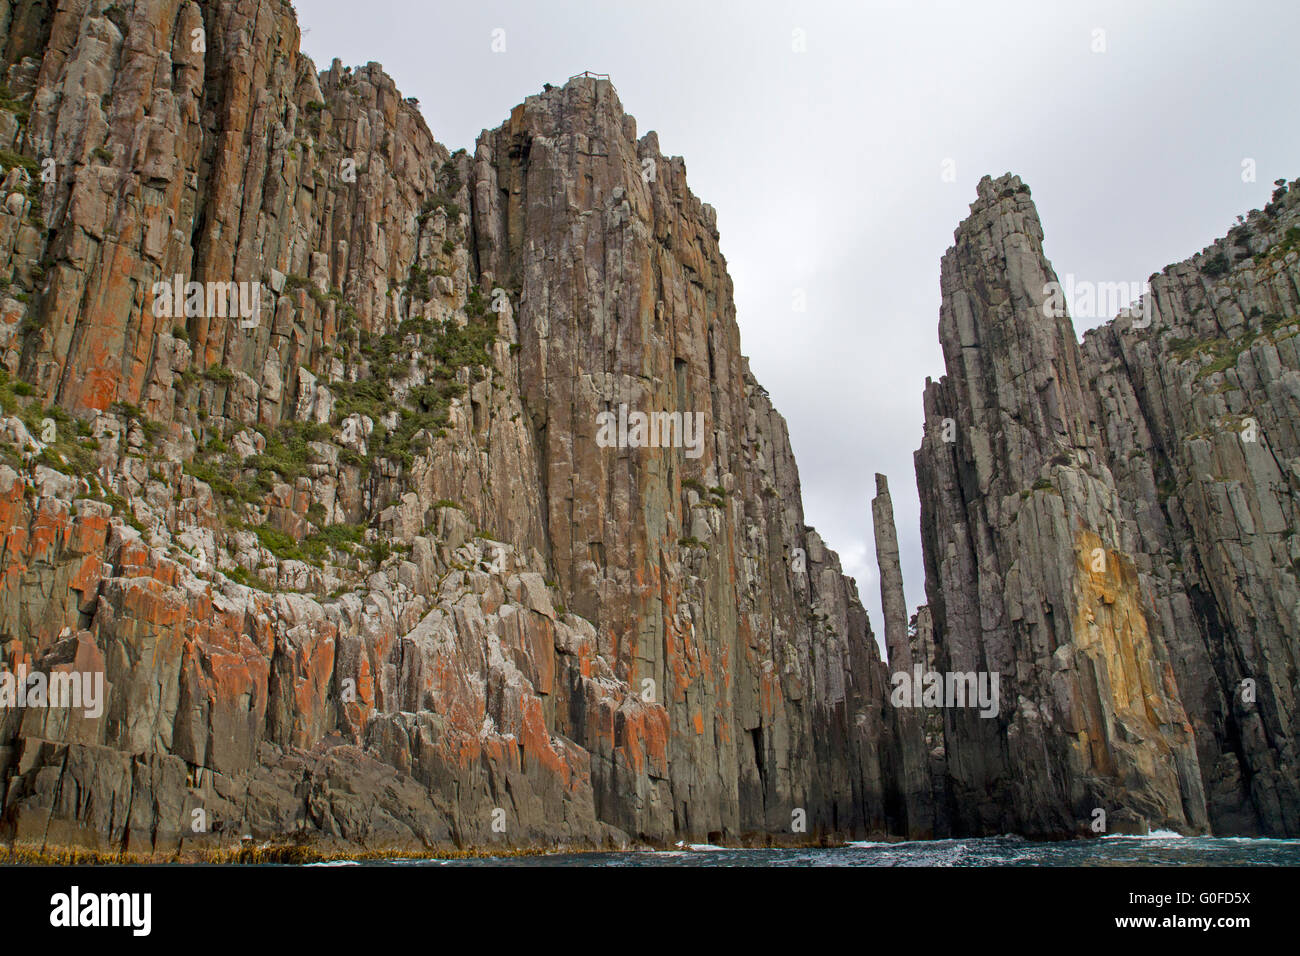 Cape Hauy, the Totem Pole and the Candlestick - Stock Image